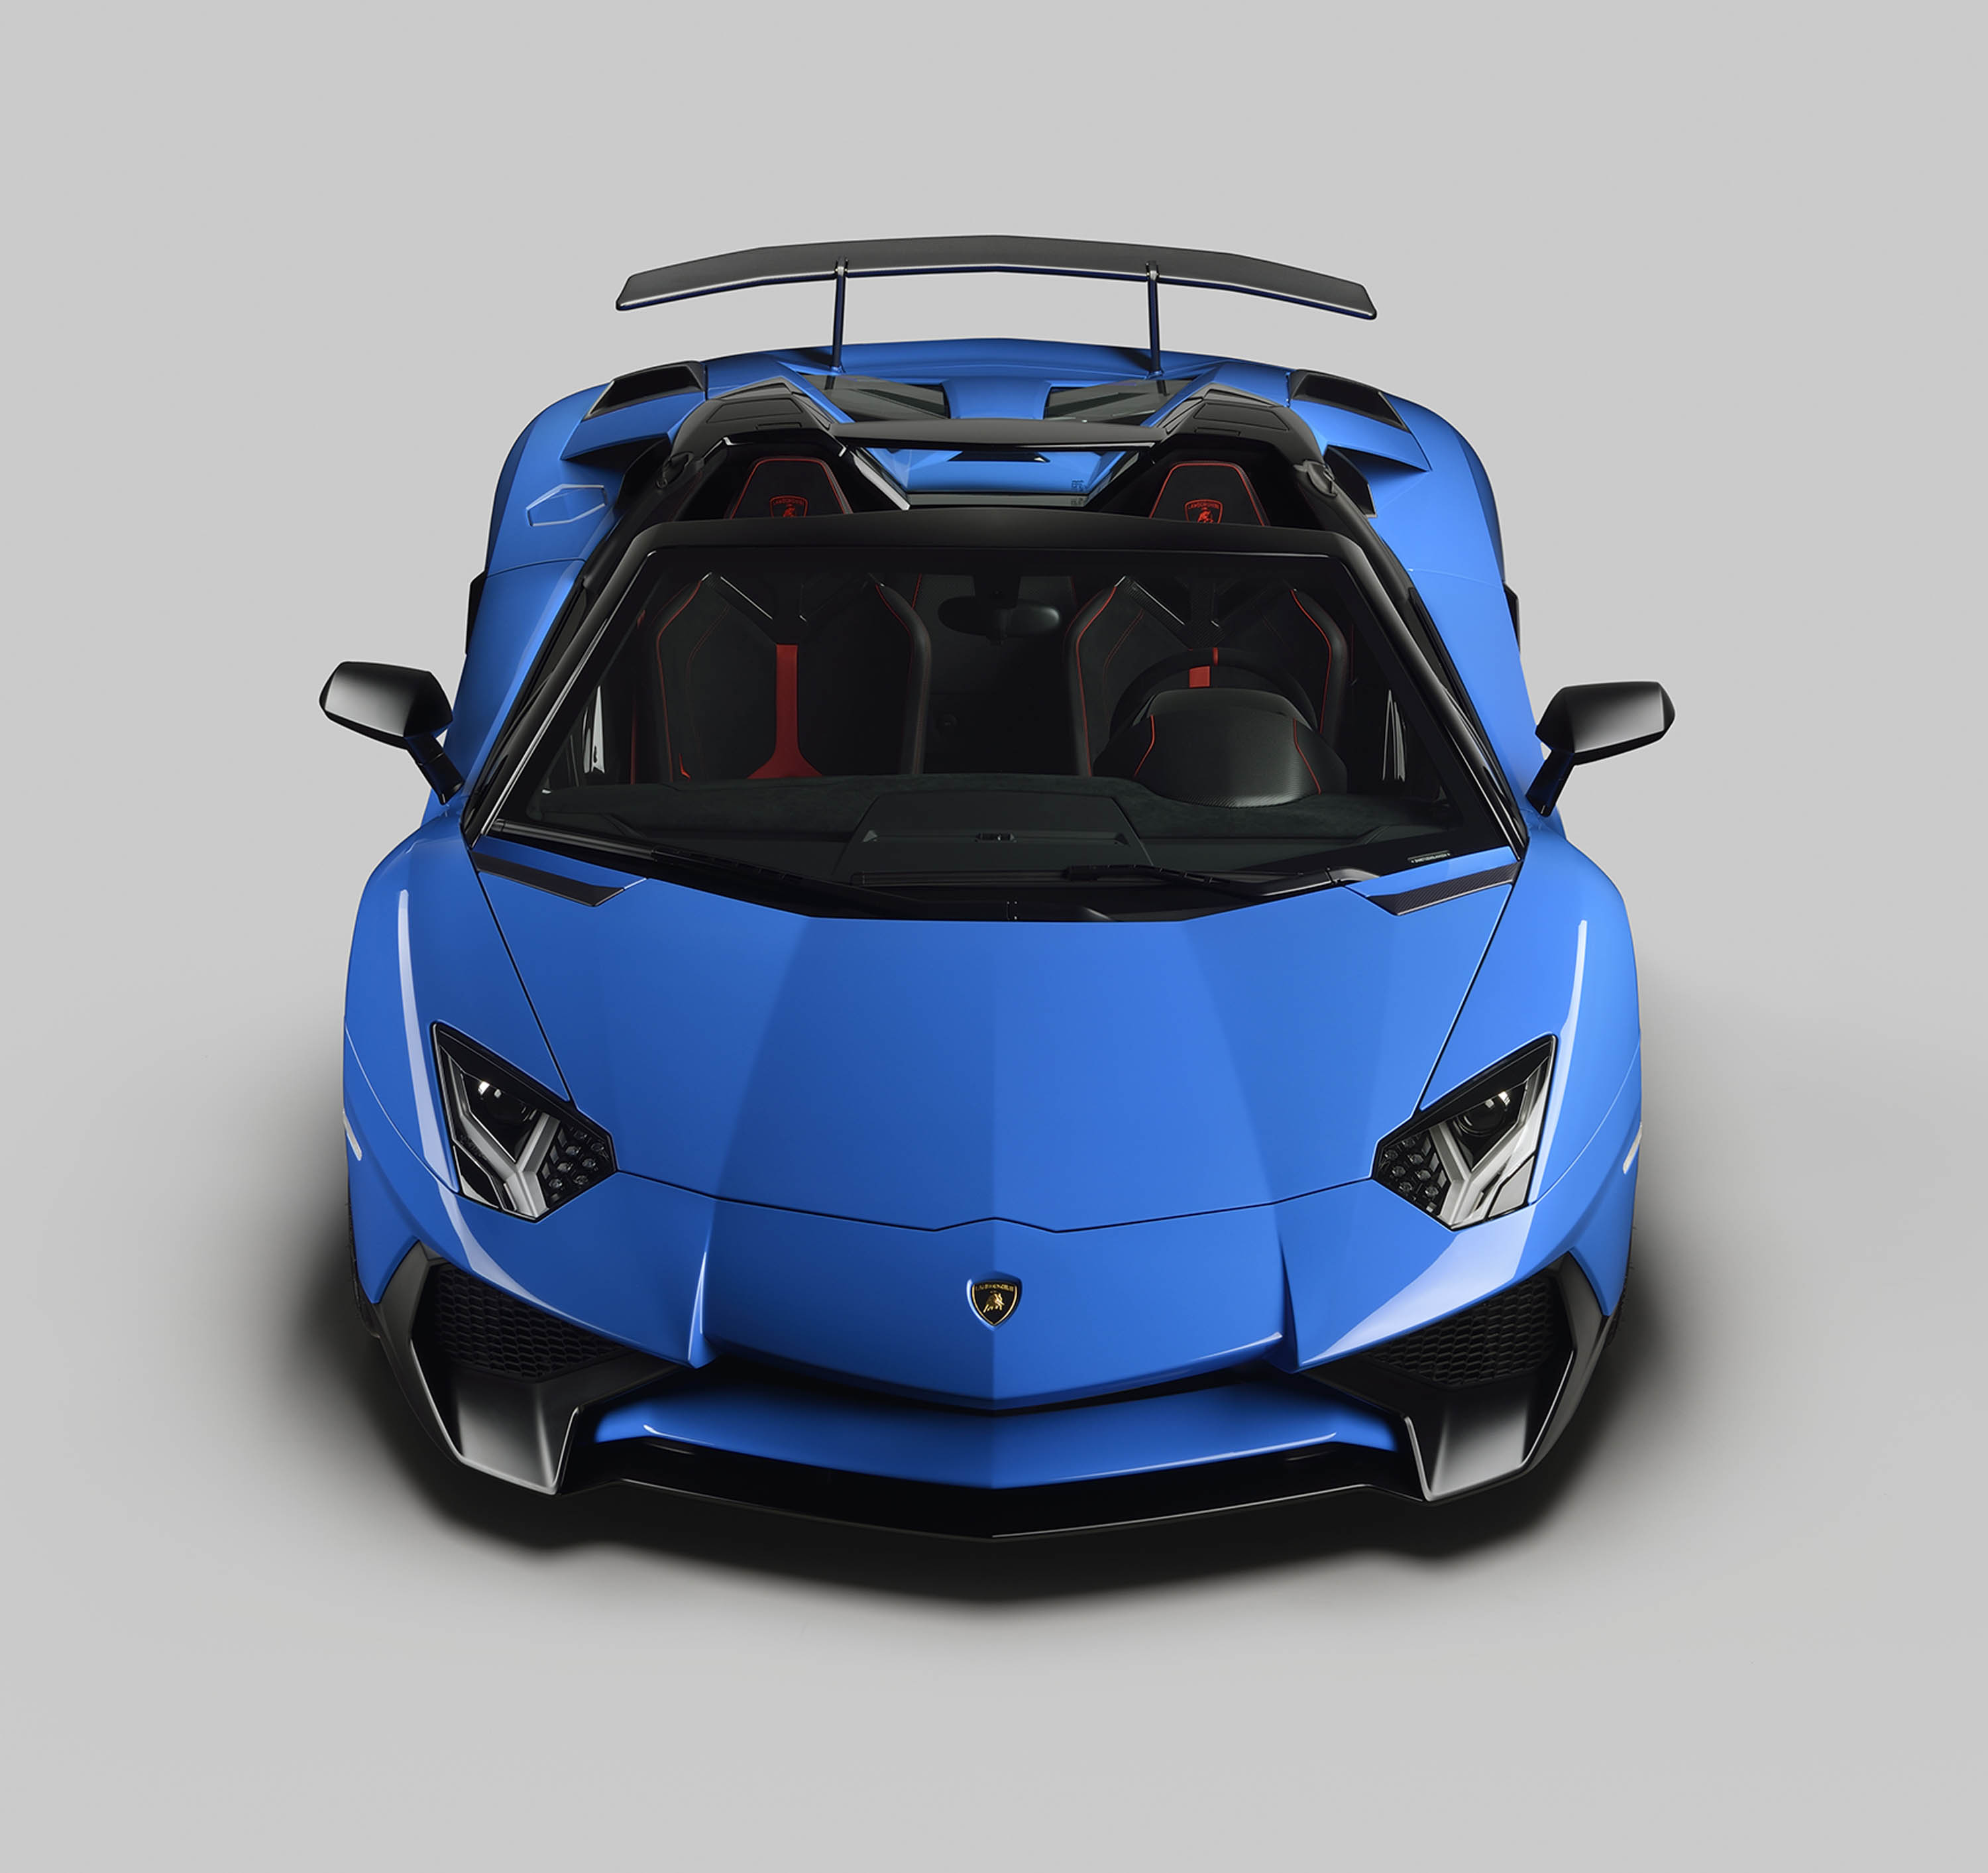 Lamborghini Sales: 2017 Lamborghini Aventador Review, Ratings, Specs, Prices